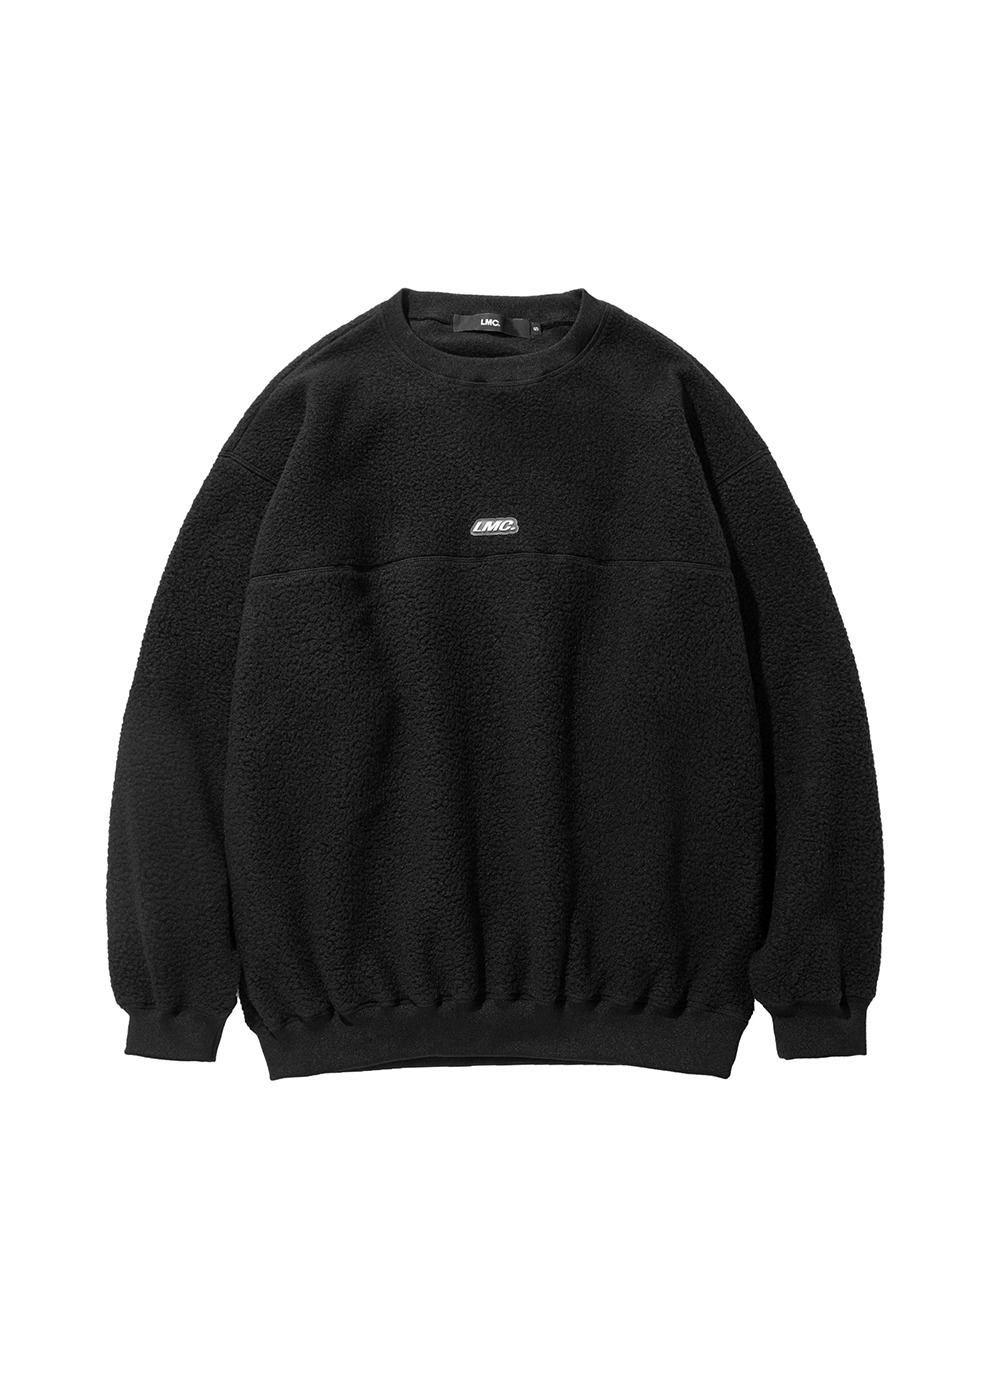 LMC BOA FLEECE OVERSIZED SWEATSHIRT black